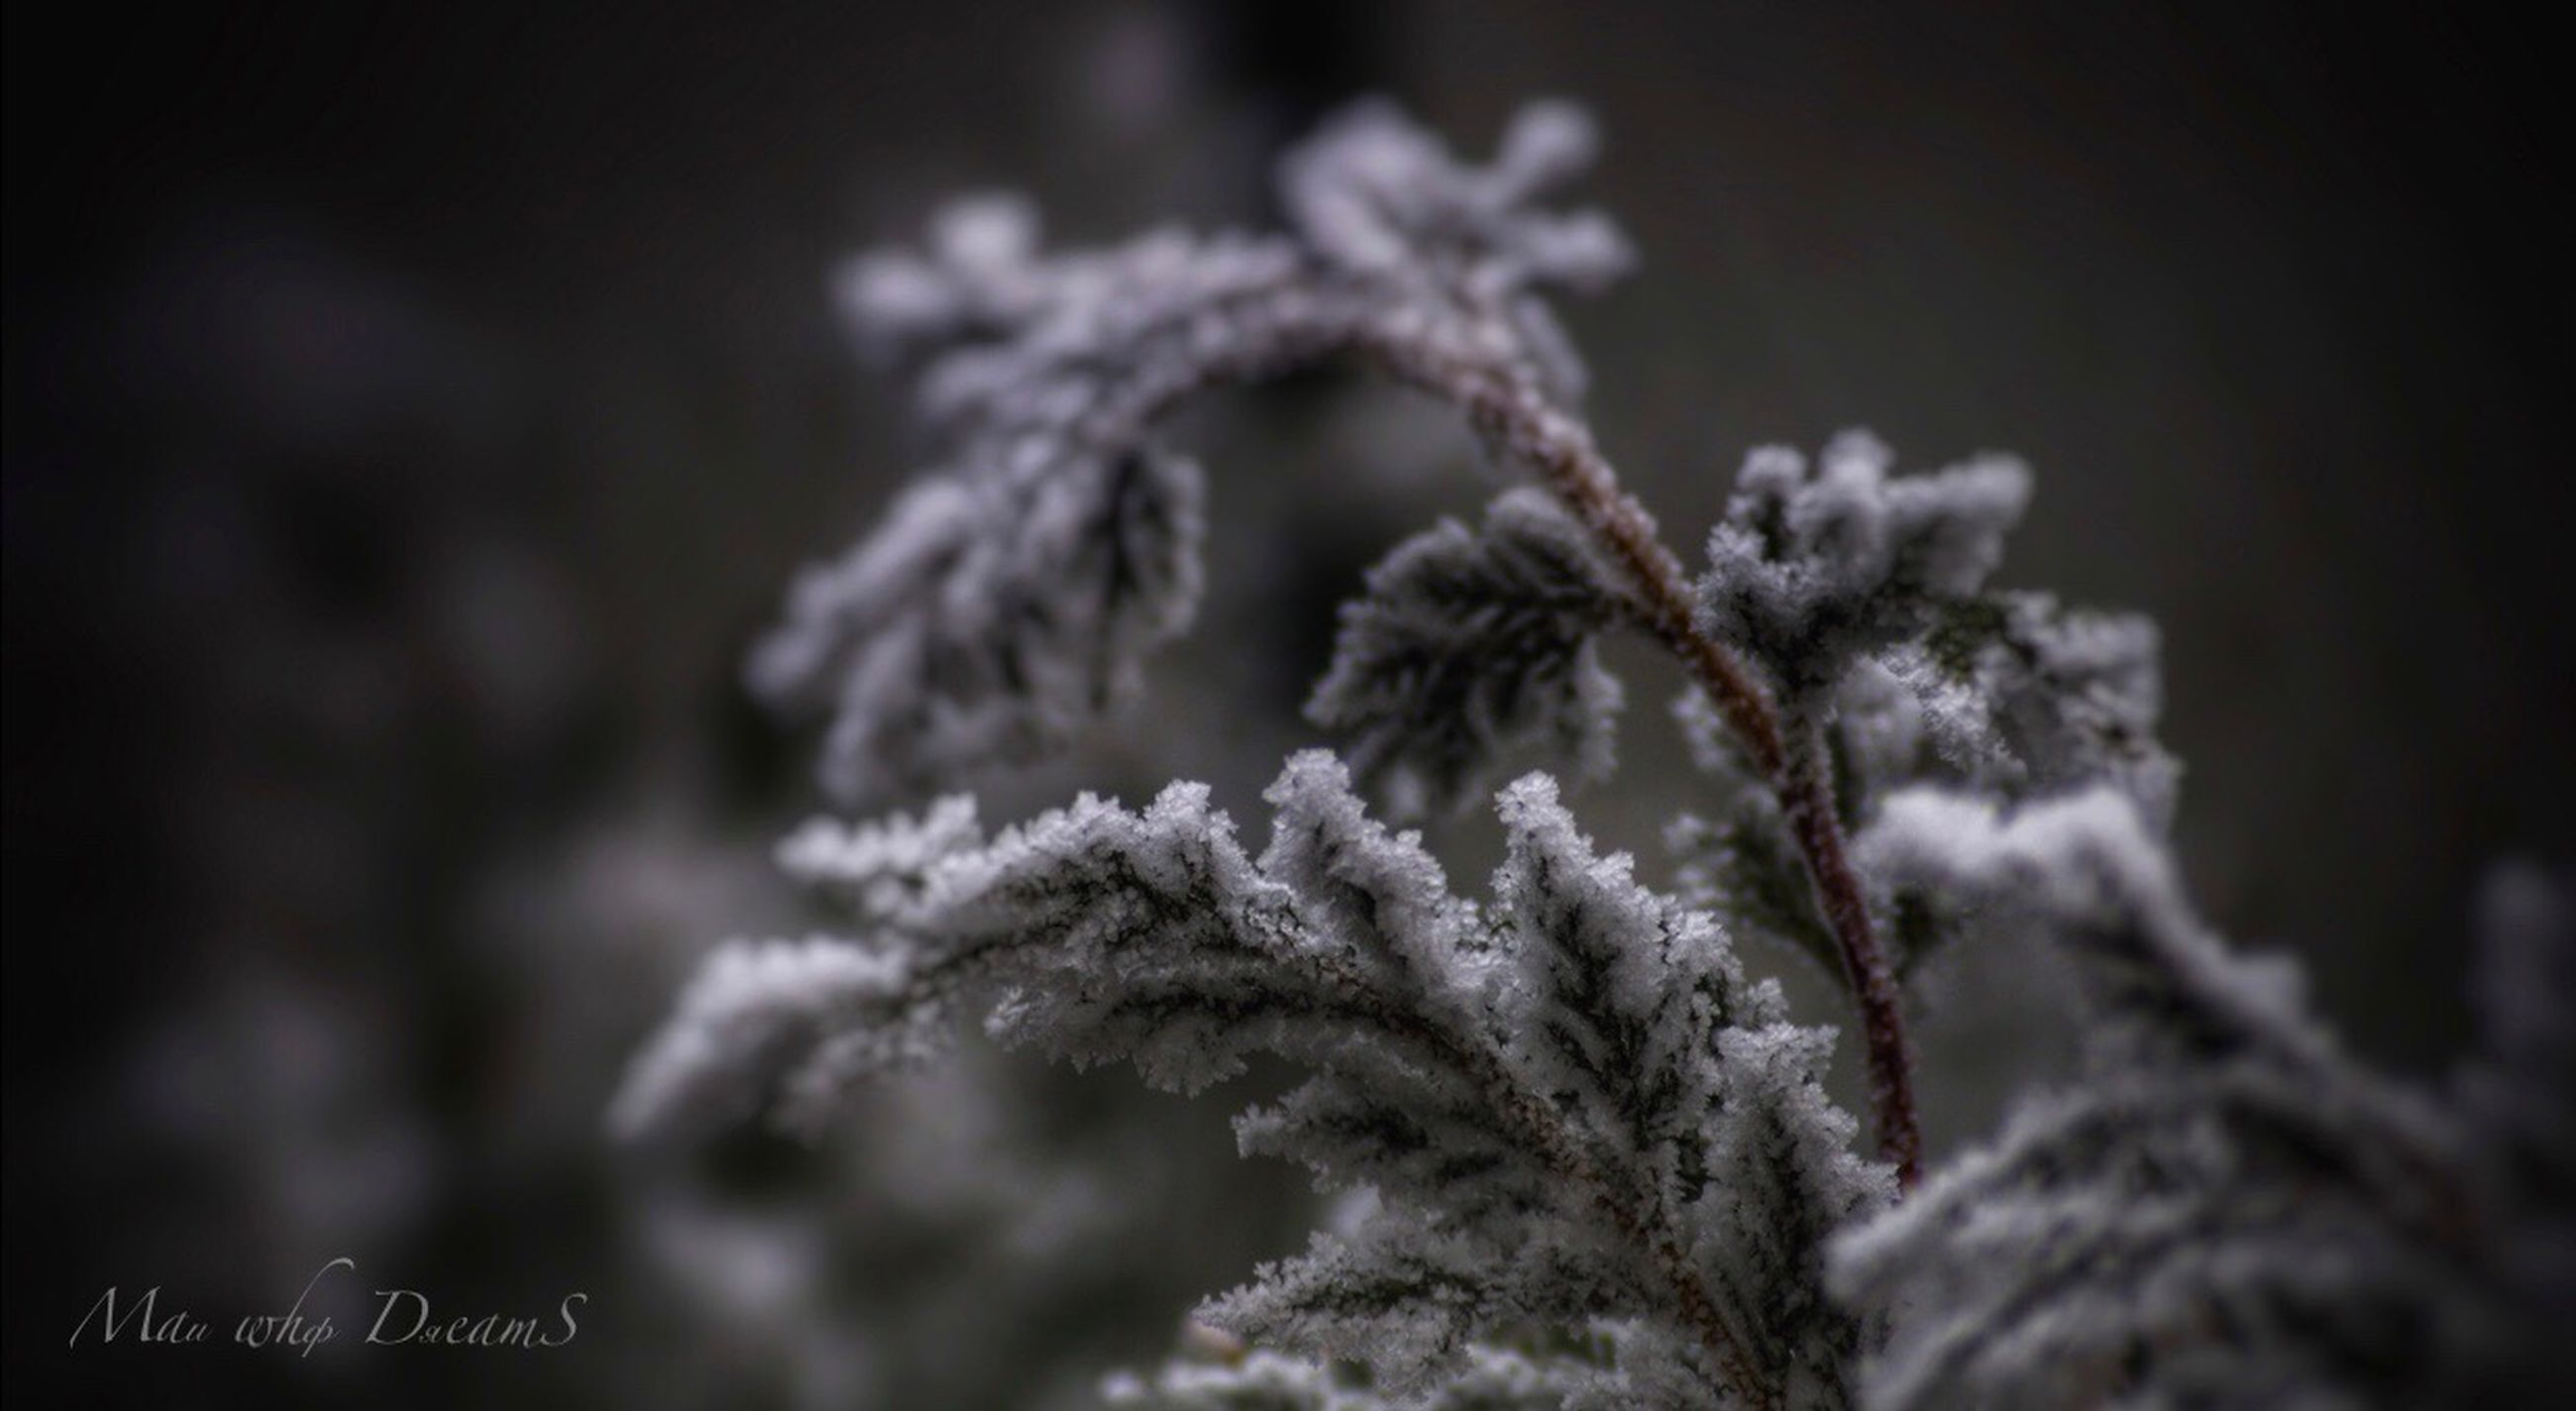 plant, close-up, no people, focus on foreground, growth, selective focus, cold temperature, nature, winter, beauty in nature, day, frozen, snow, outdoors, tranquility, frost, tree, ice, vulnerability, pine tree, fir tree